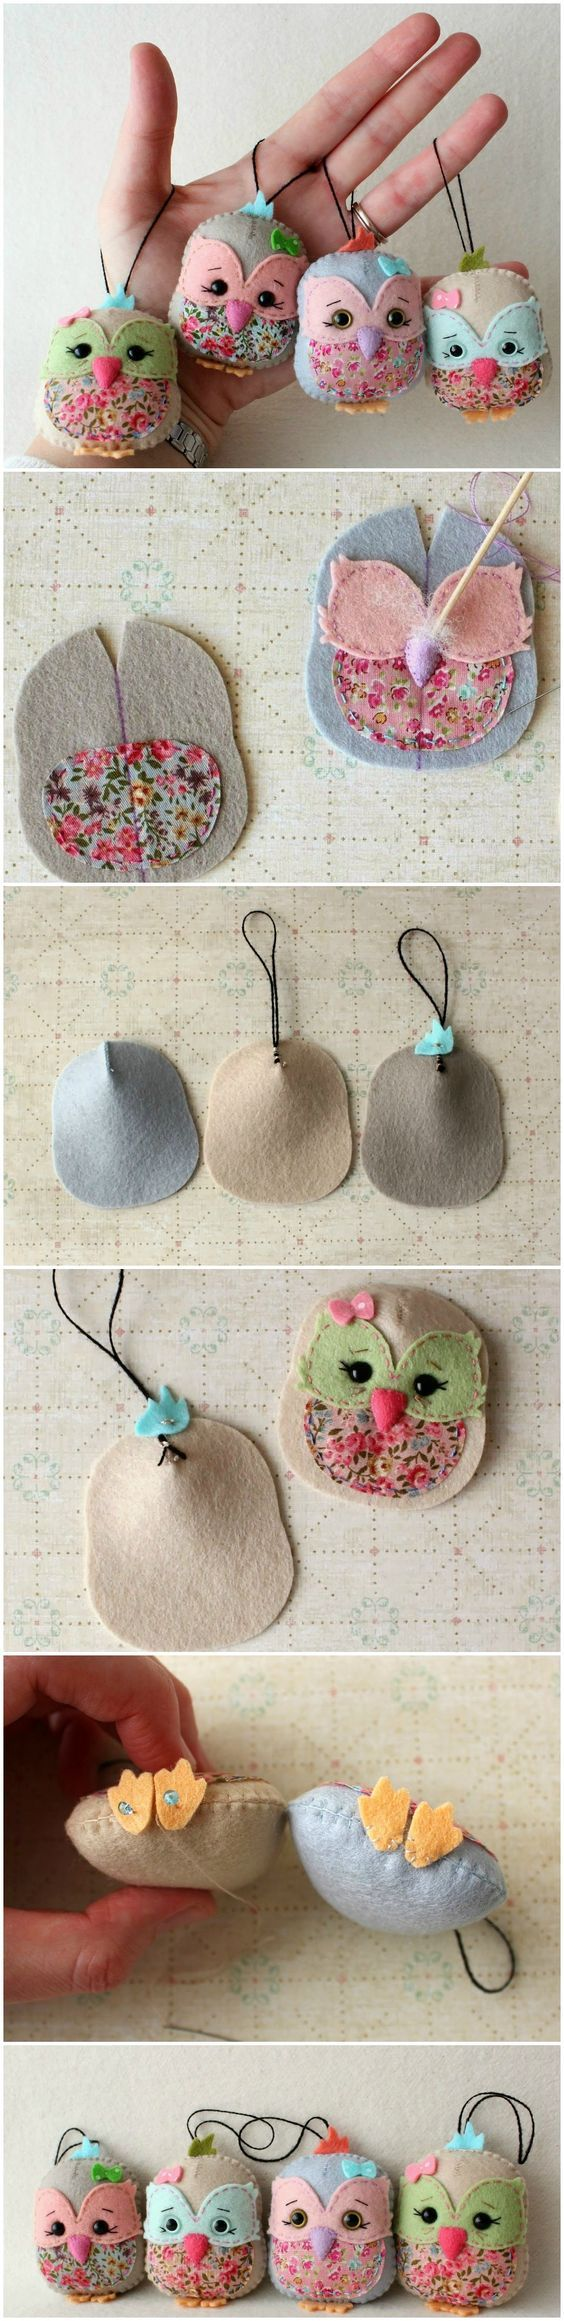 More info and instructions about this great tutorial you can find in the source url - above the photo. diyfuntips.com is a collection of the best and most creative do it yourself projects, tips and tutorials. We dont claim ownership to any of these photos/videos. Credits goes to the original author of this great work. […]: